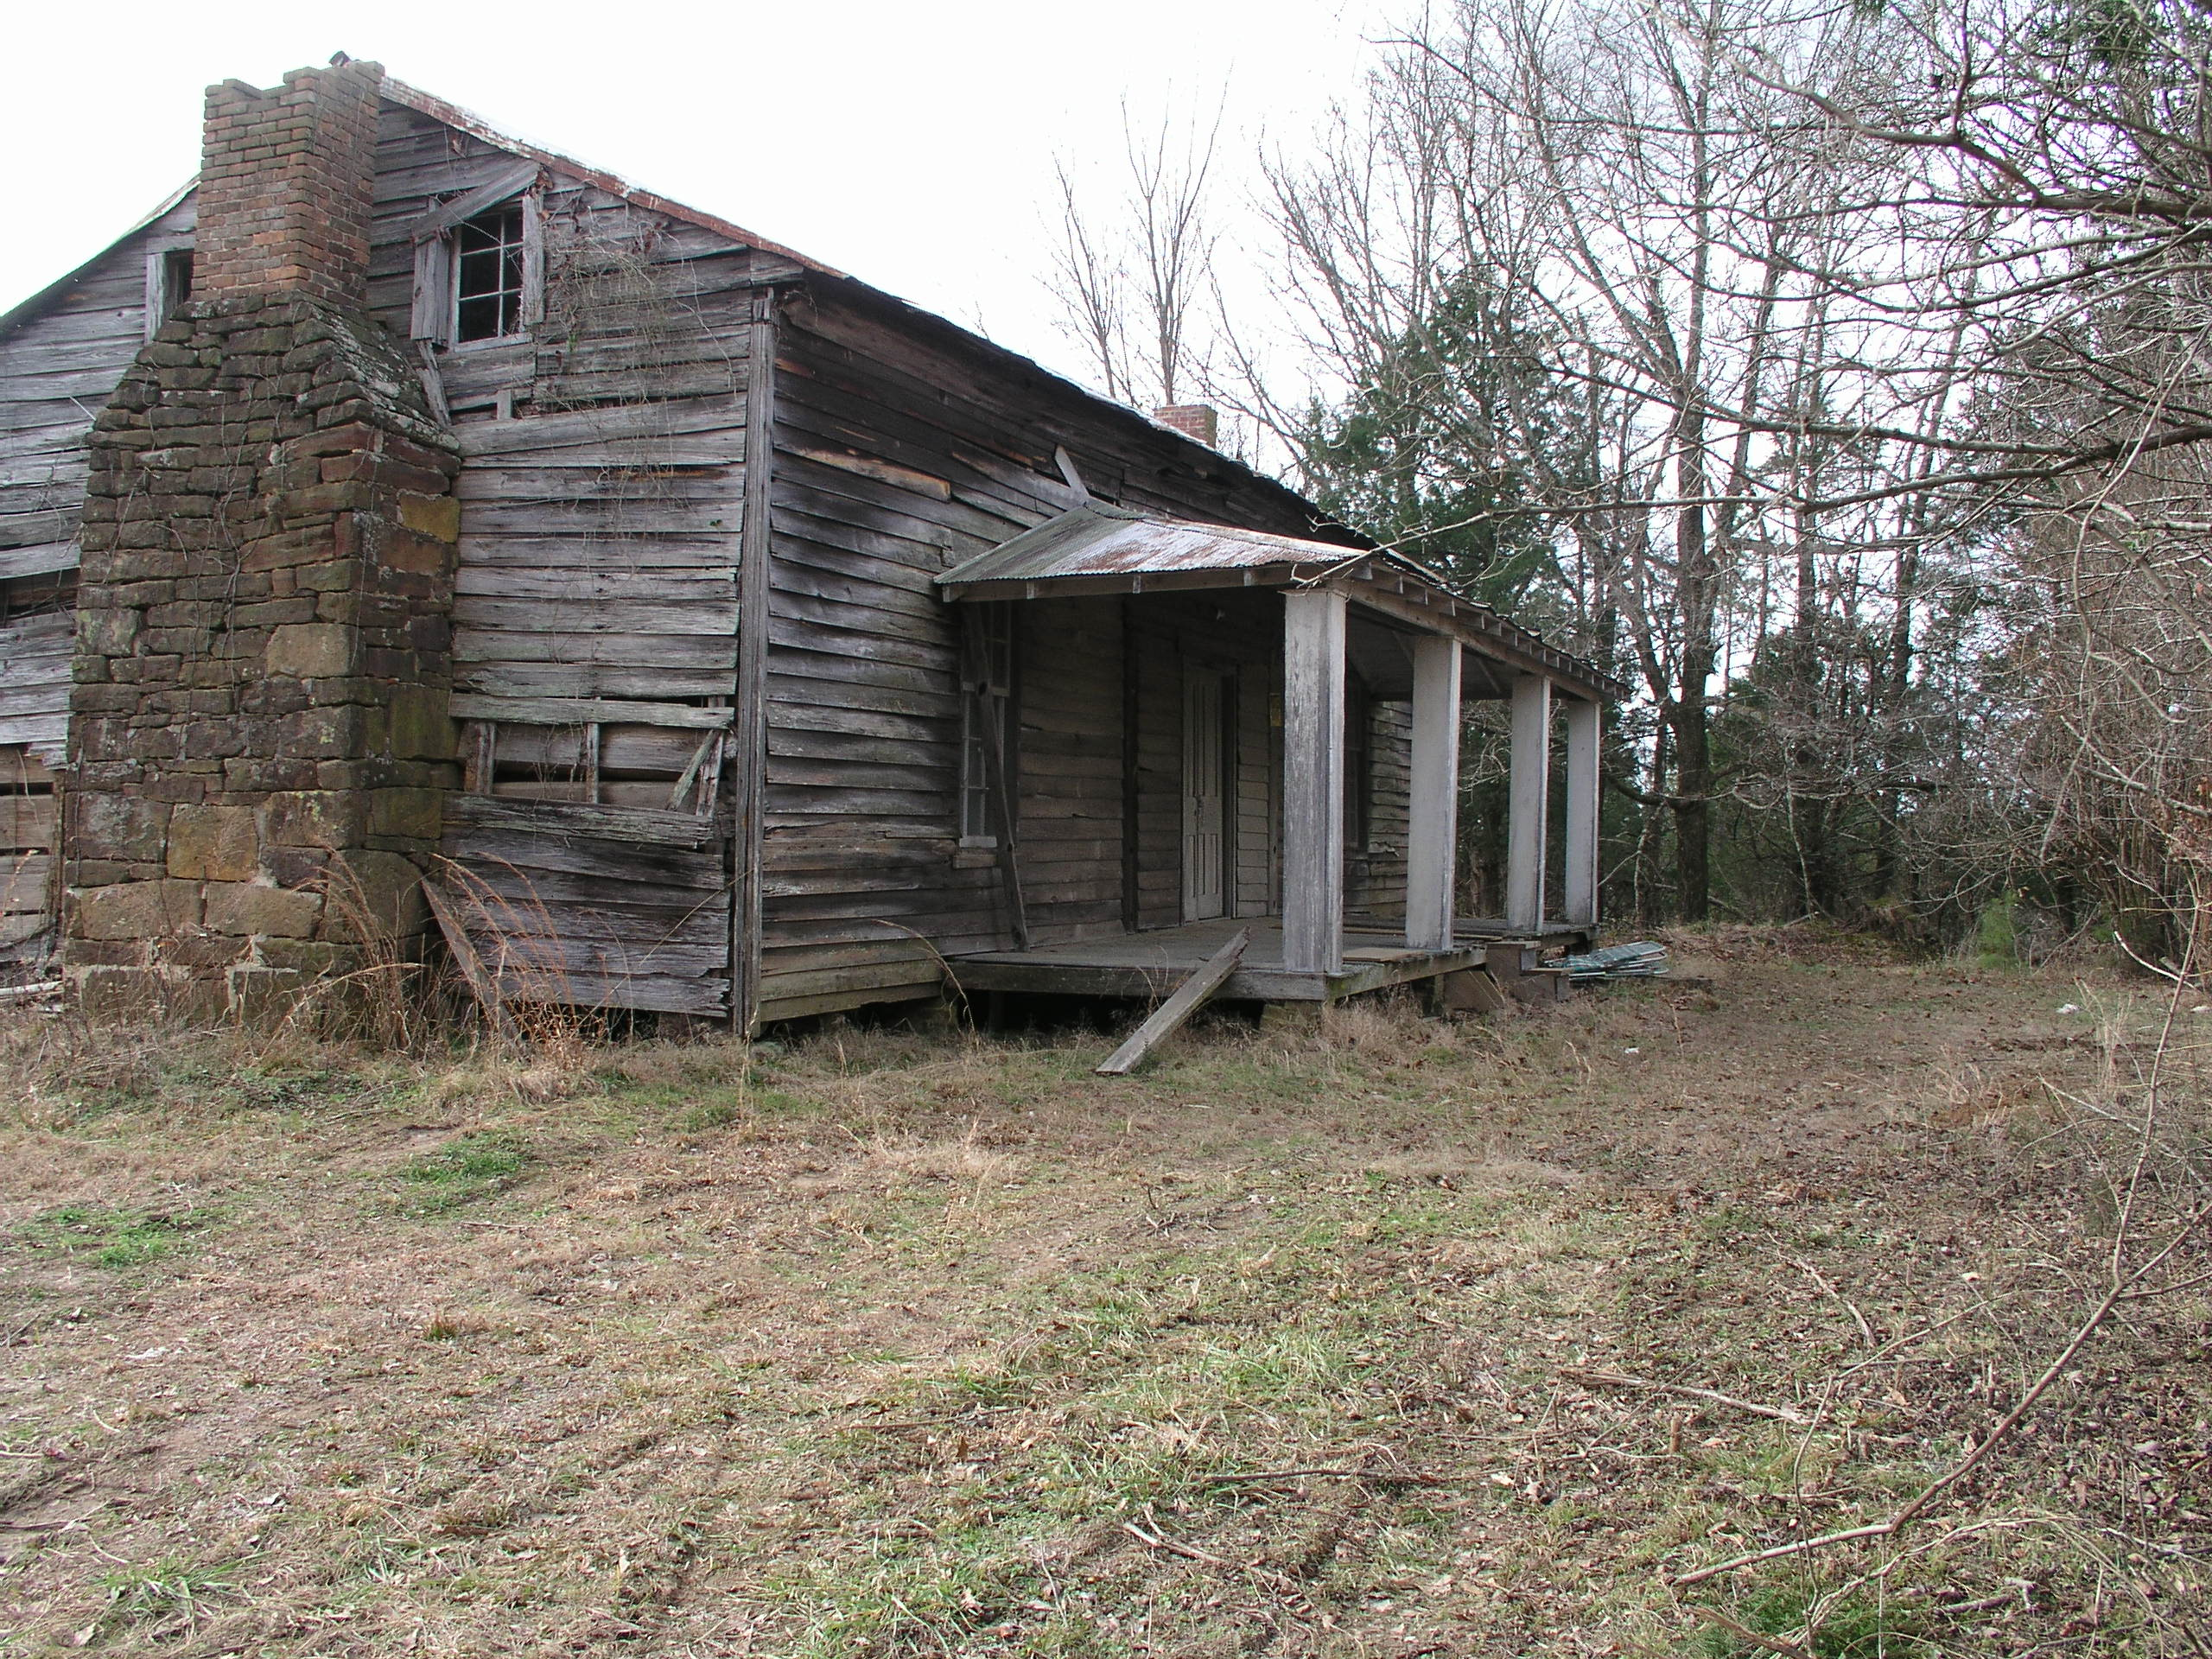 Built in 1850, the George Wright Young House is considered to be the oldest structure in Lafayette county